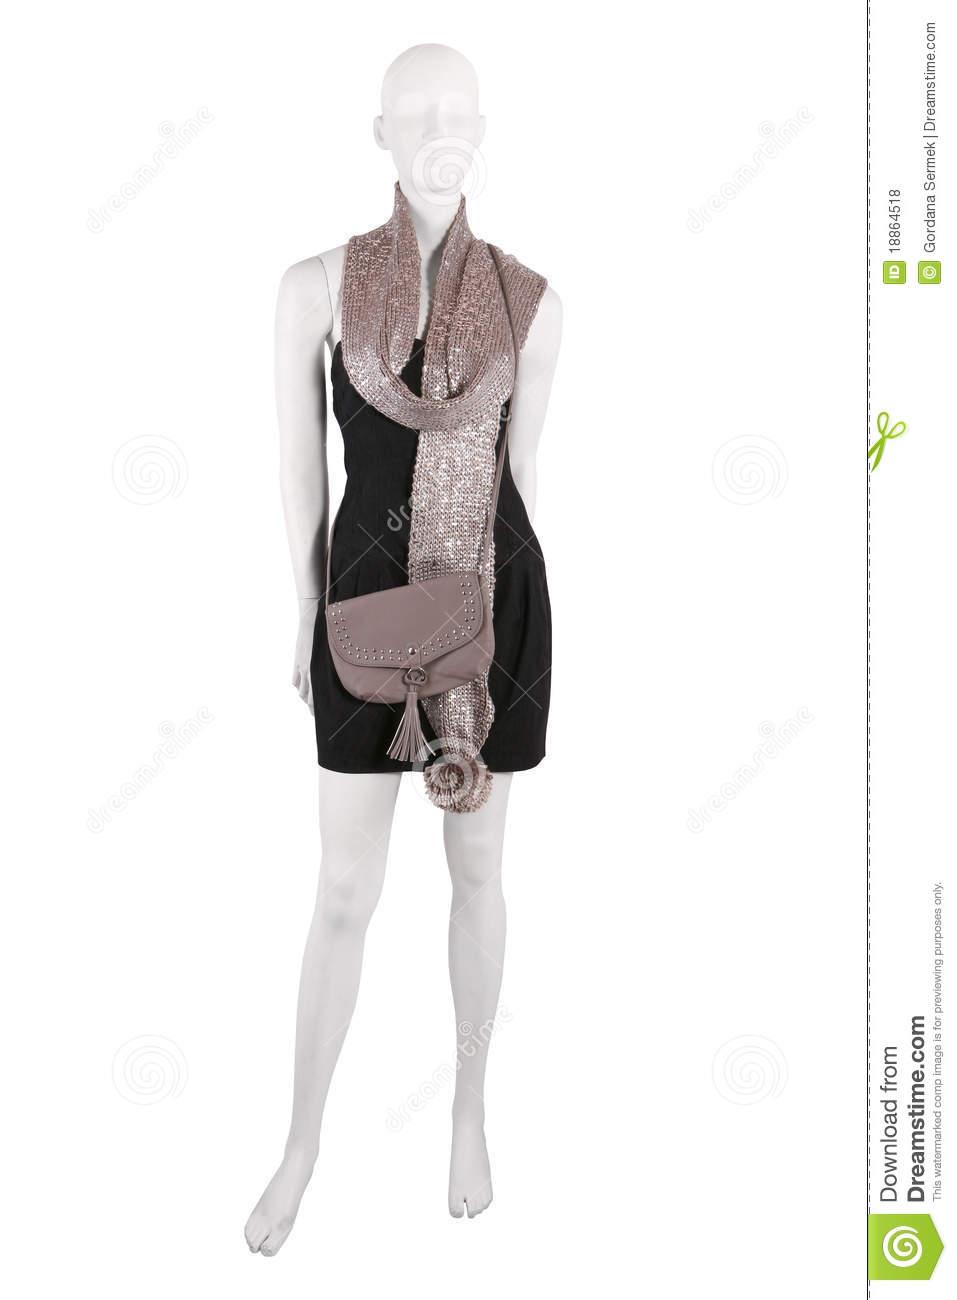 Mannequin Dressed In Female Clothing Royalty Free Stock ...